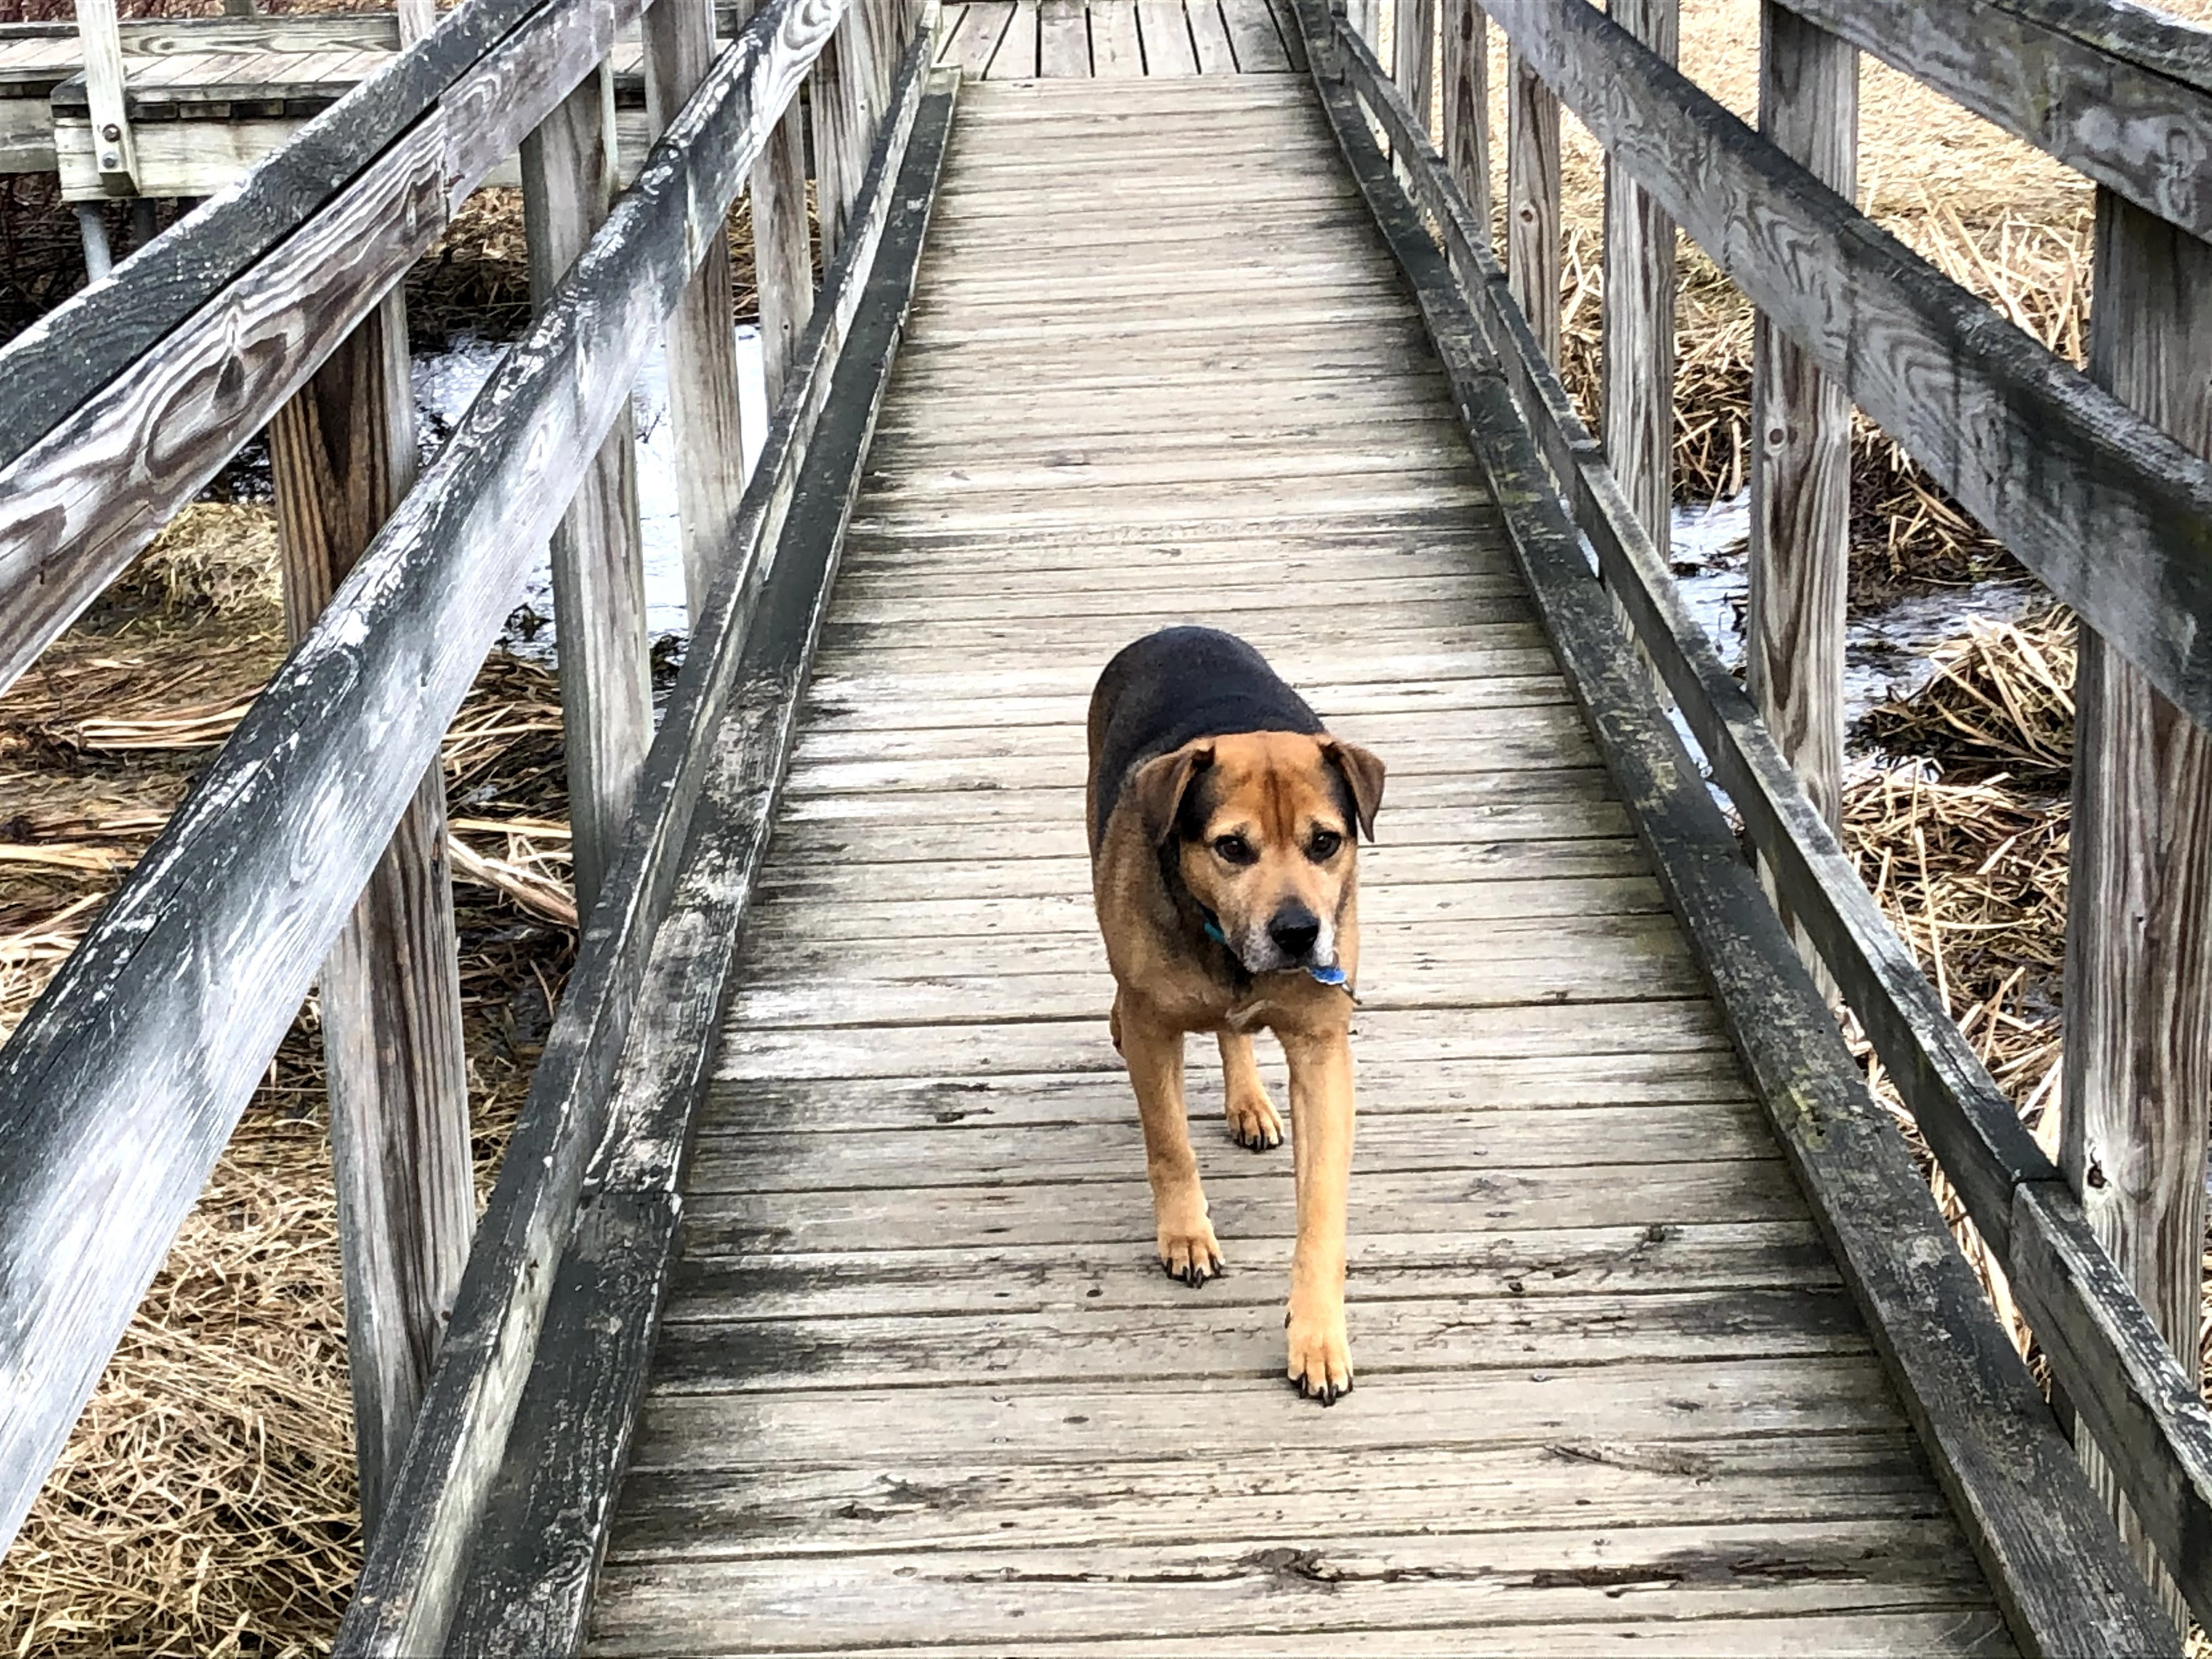 Pepper crossing the bridge